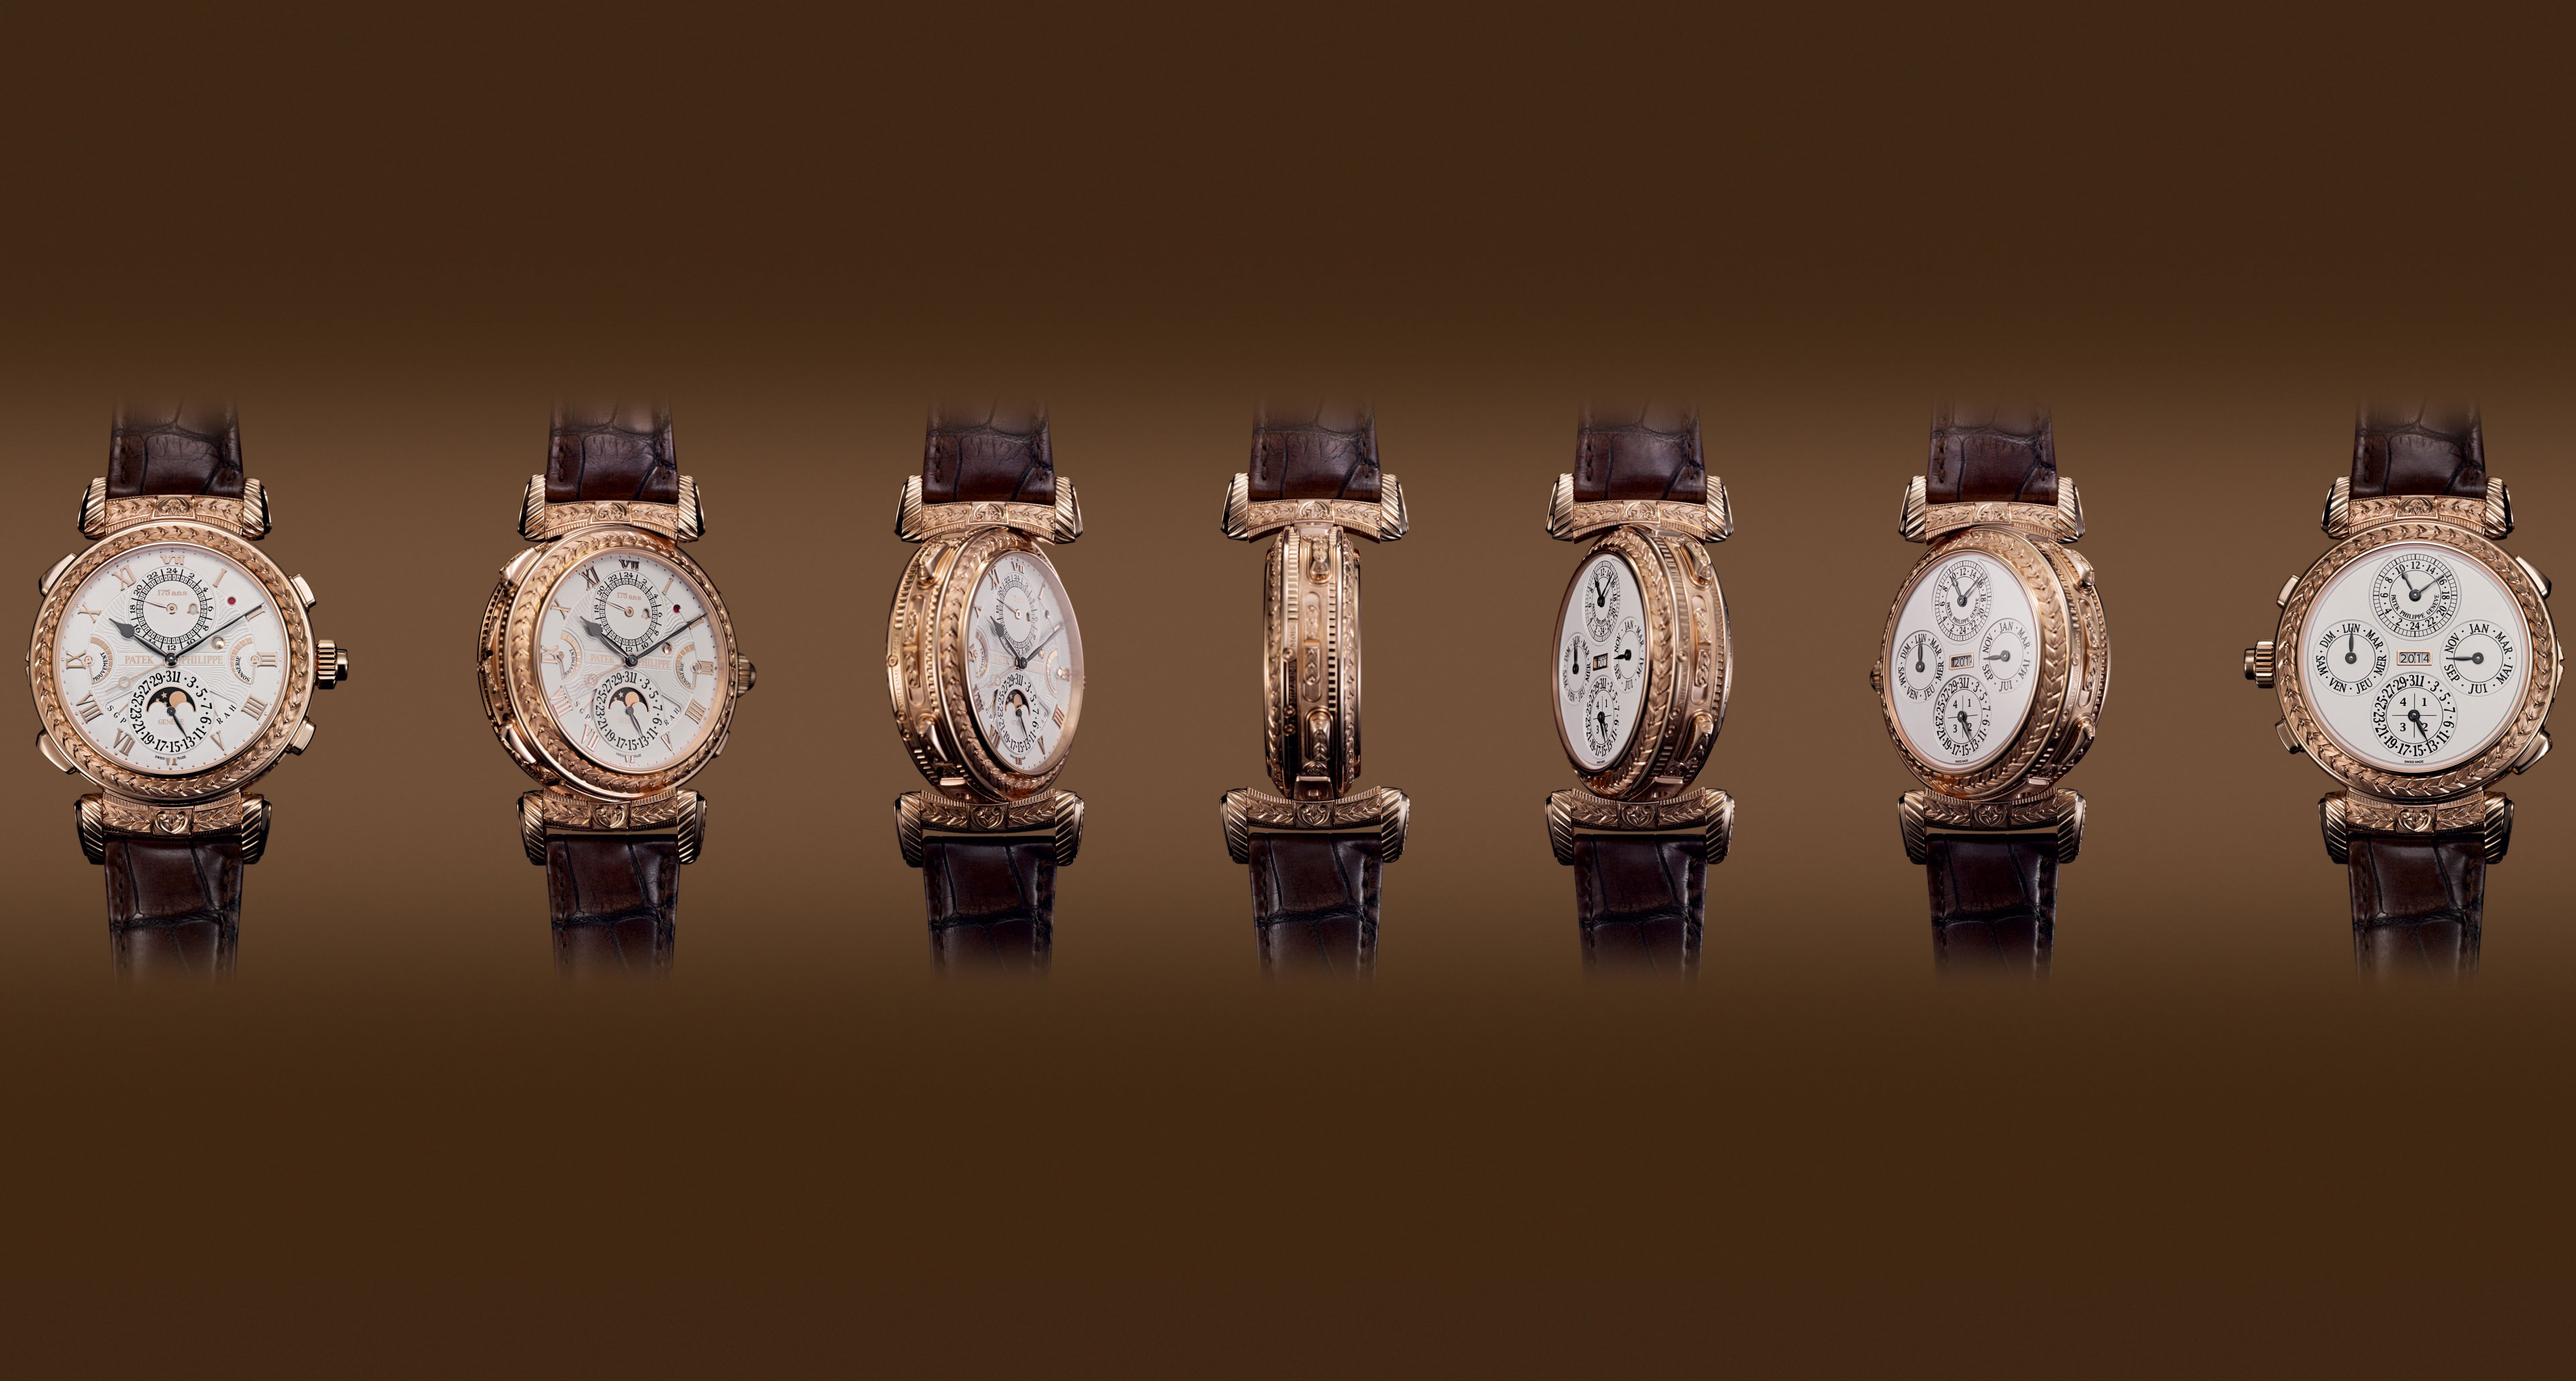 The Patek Philippe Grandmaster Chime Referenz 5175 limited jubilee Watch